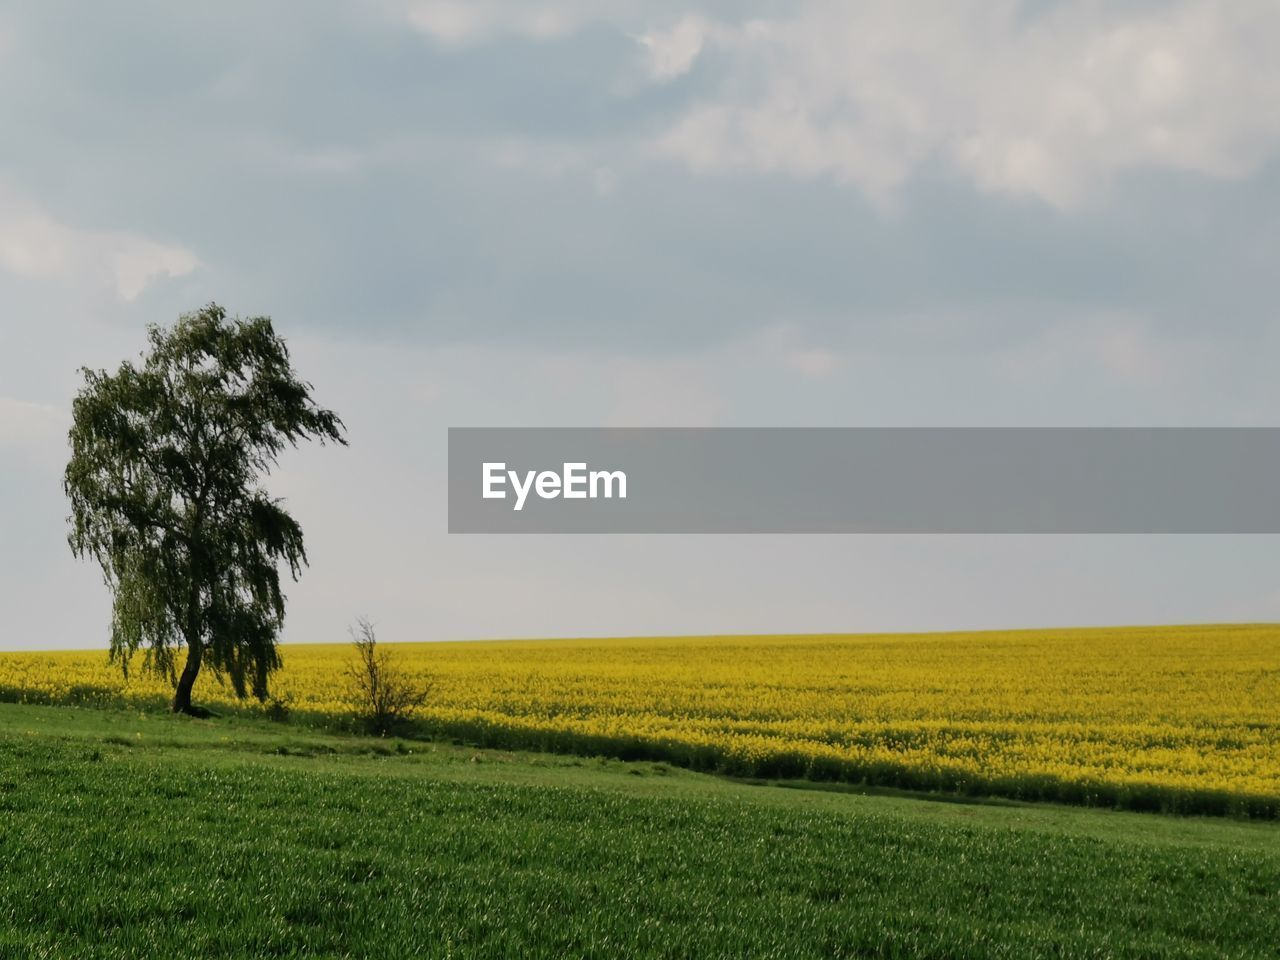 landscape, environment, field, land, sky, plant, beauty in nature, tranquil scene, tranquility, scenics - nature, growth, cloud - sky, agriculture, rural scene, horizon, nature, tree, horizon over land, grass, crop, no people, outdoors